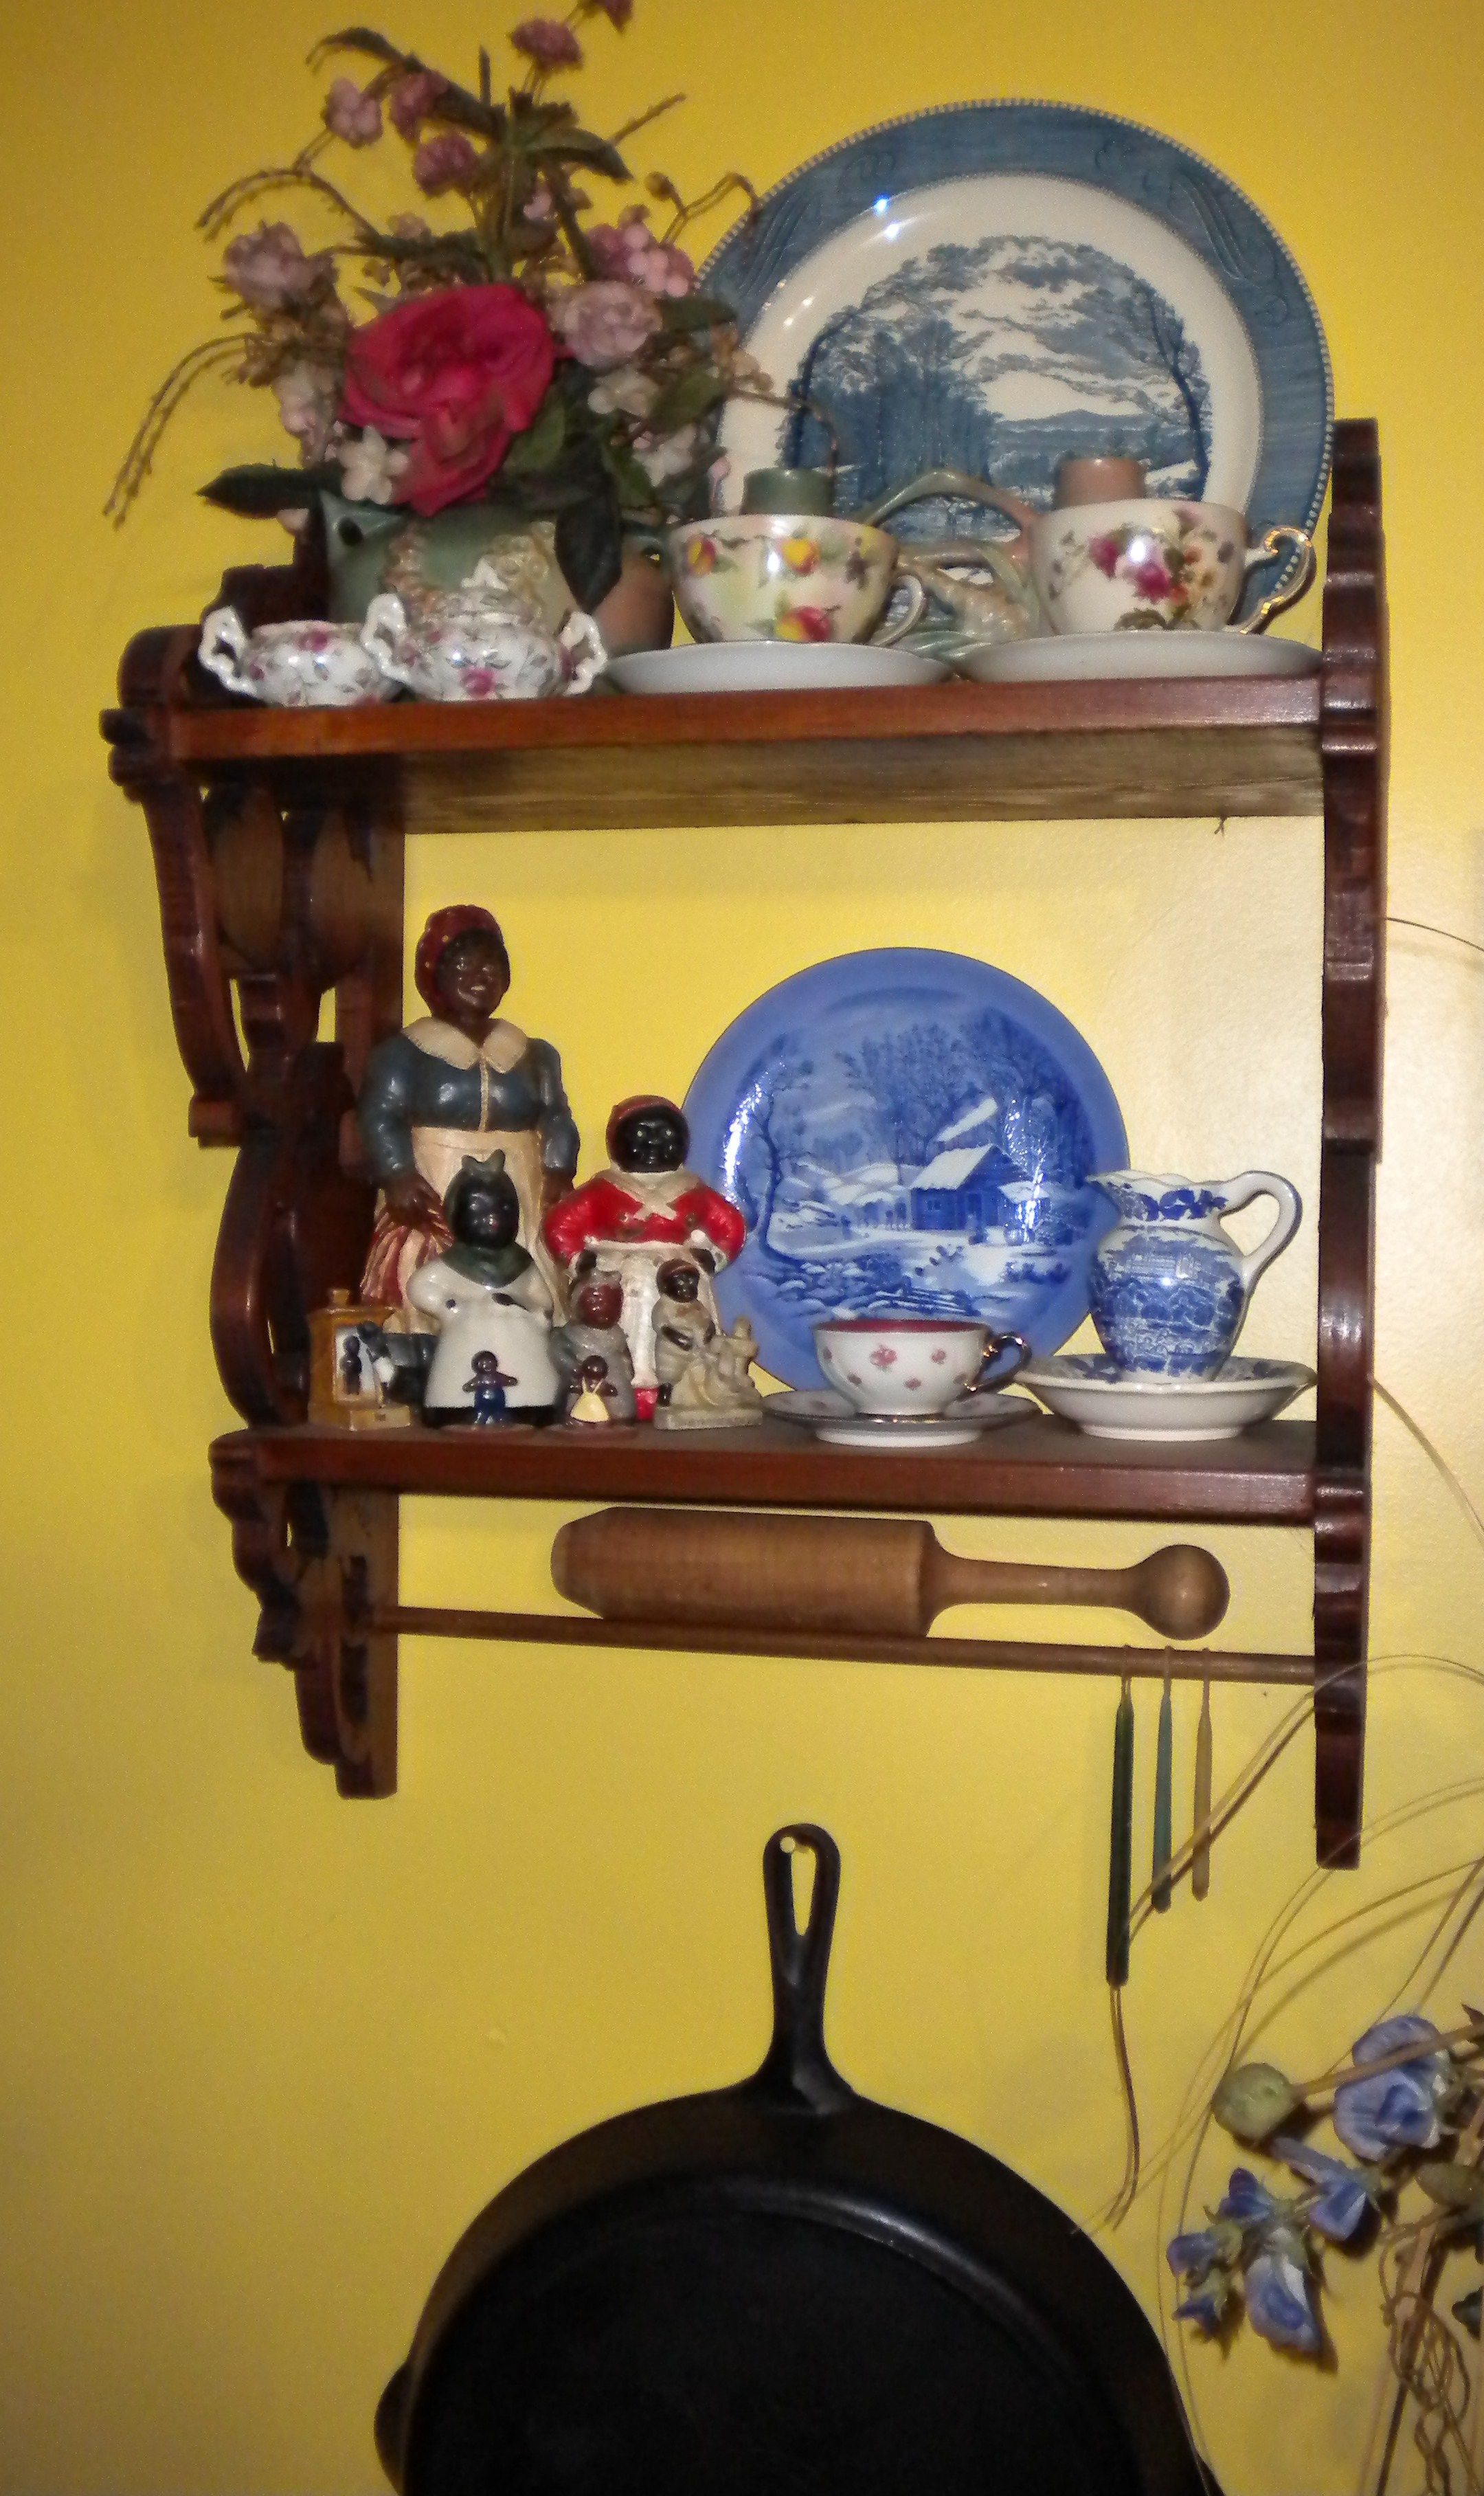 Collection of antique adds a style to the kitchen.